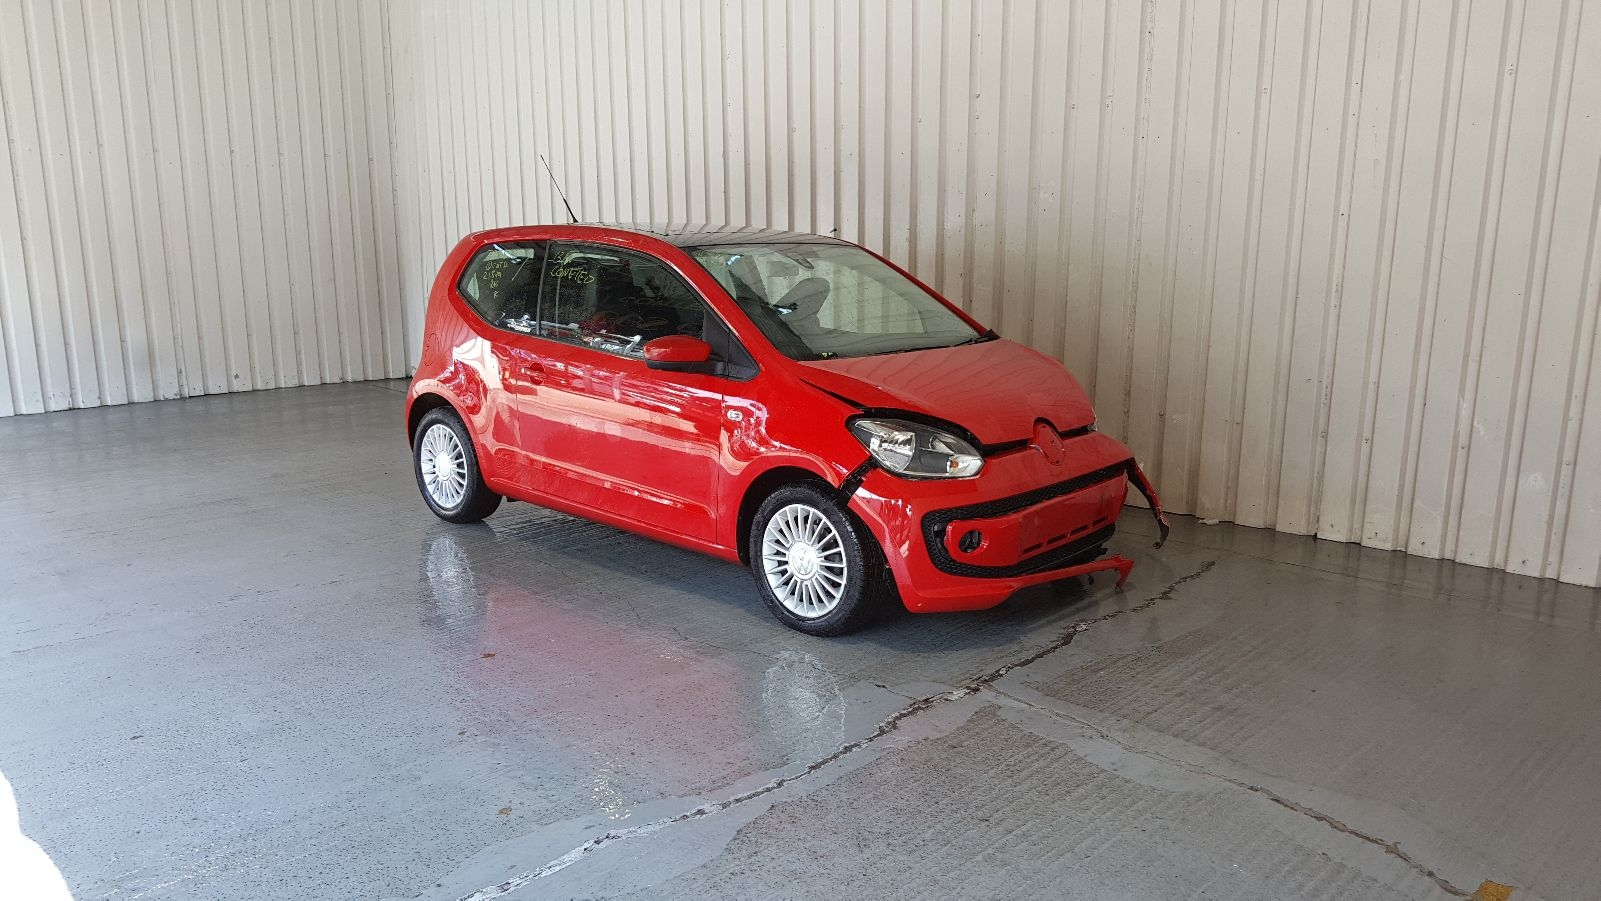 Image for a 2012 Volkswagen Up 1 Petrol CHYB Engine